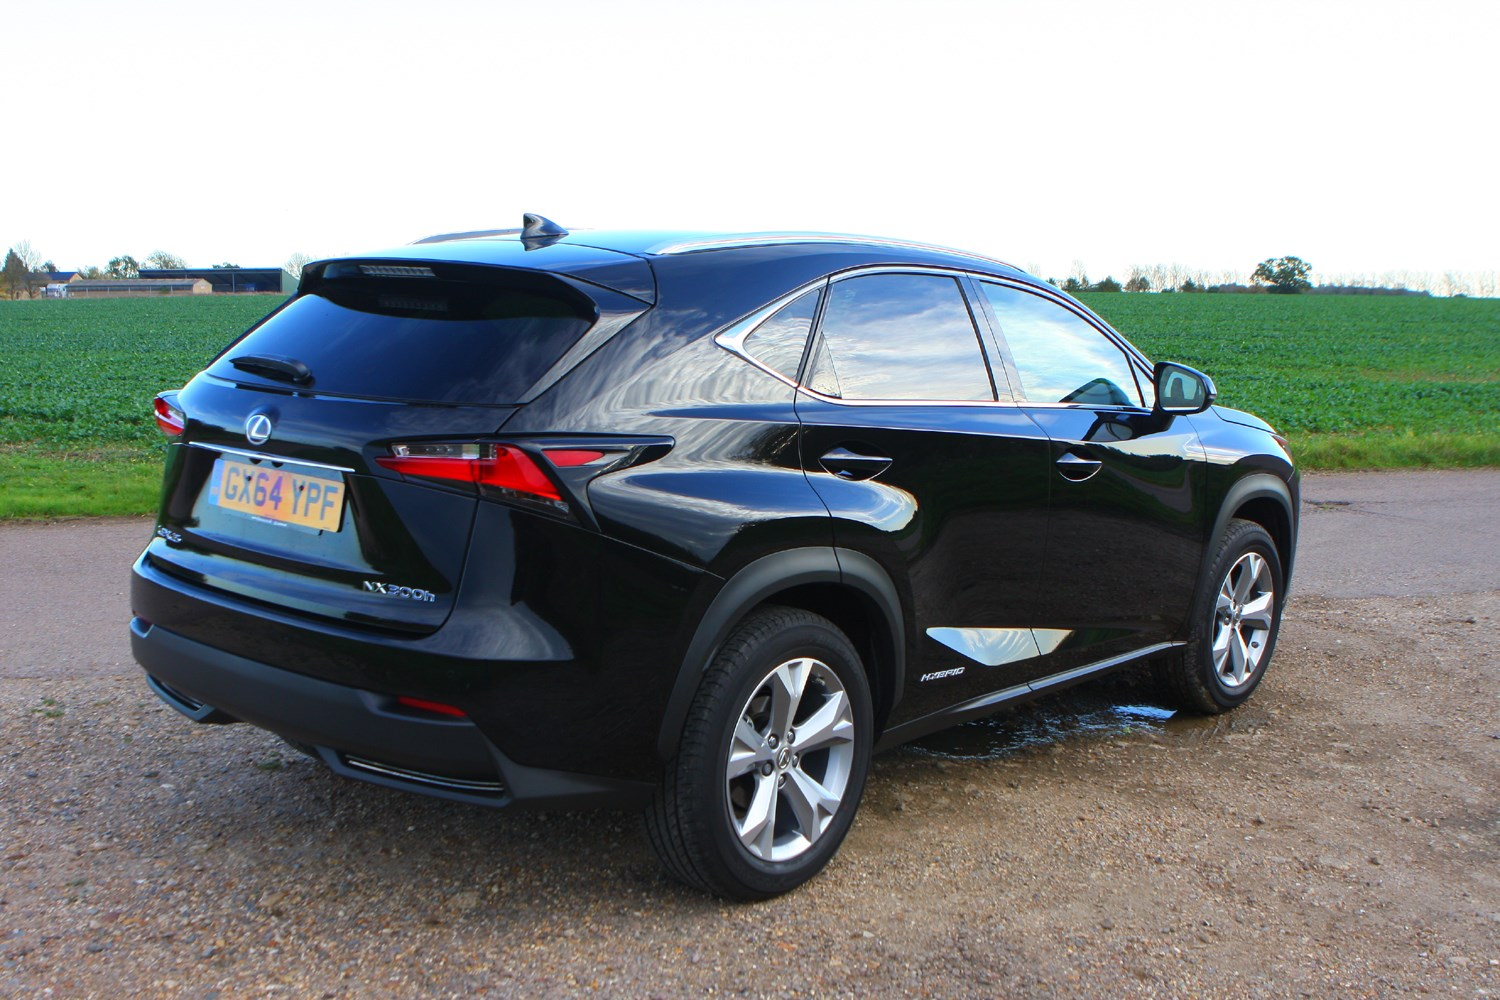 Used Lexus Cars For Sale N I | Autos Post